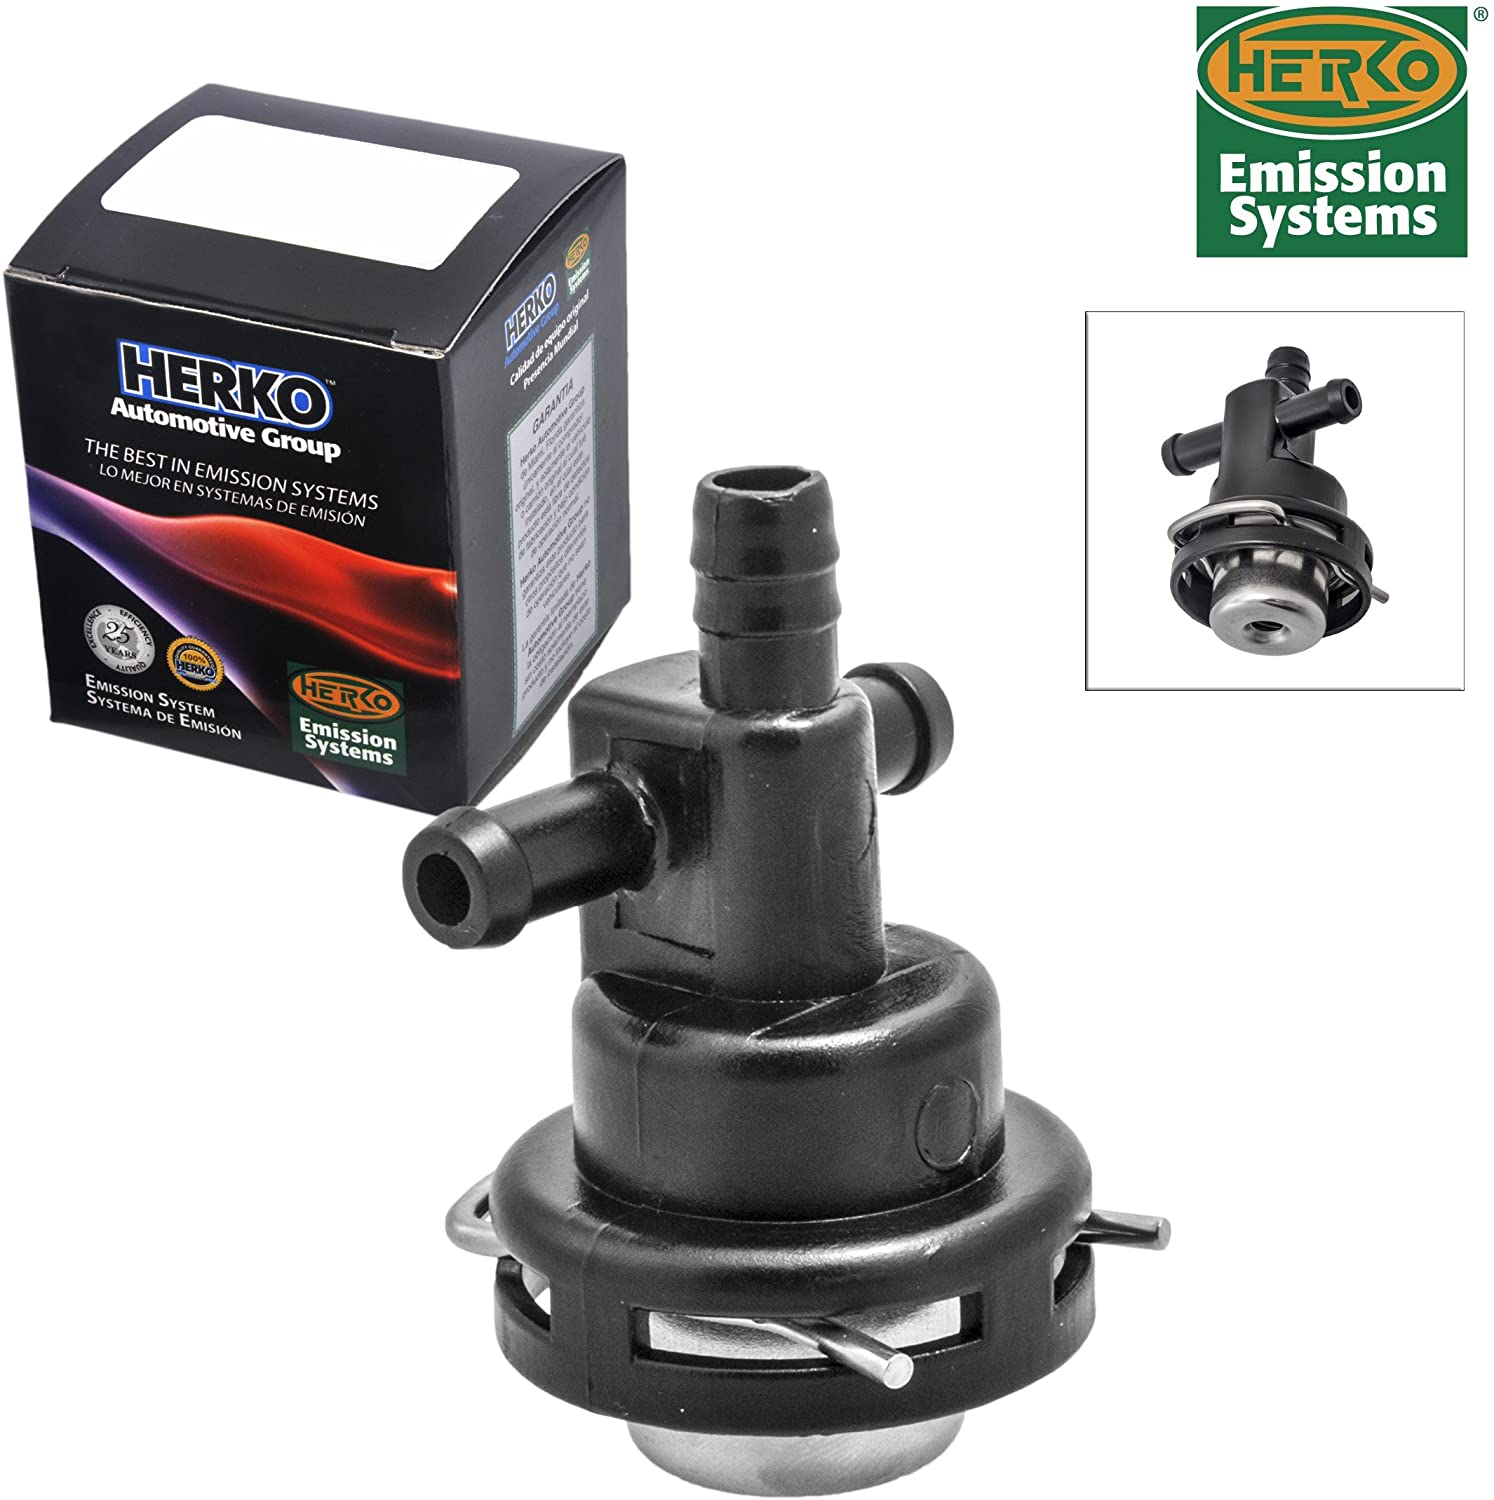 Fuel Pressure Regulator Herko PRH4030 For Ford Ranger 98-11 (4.5 BAR-65.27 PSI))